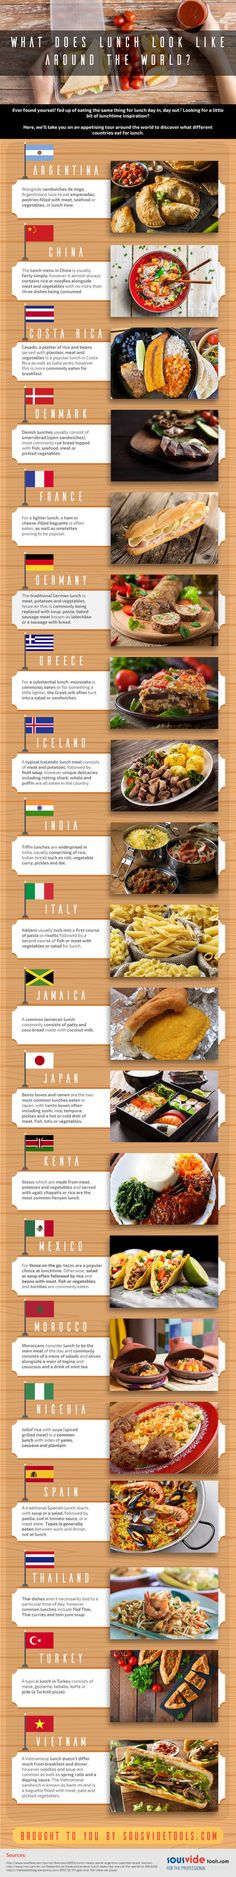 20 Quick And Simple Lunch Ideas From Around The World